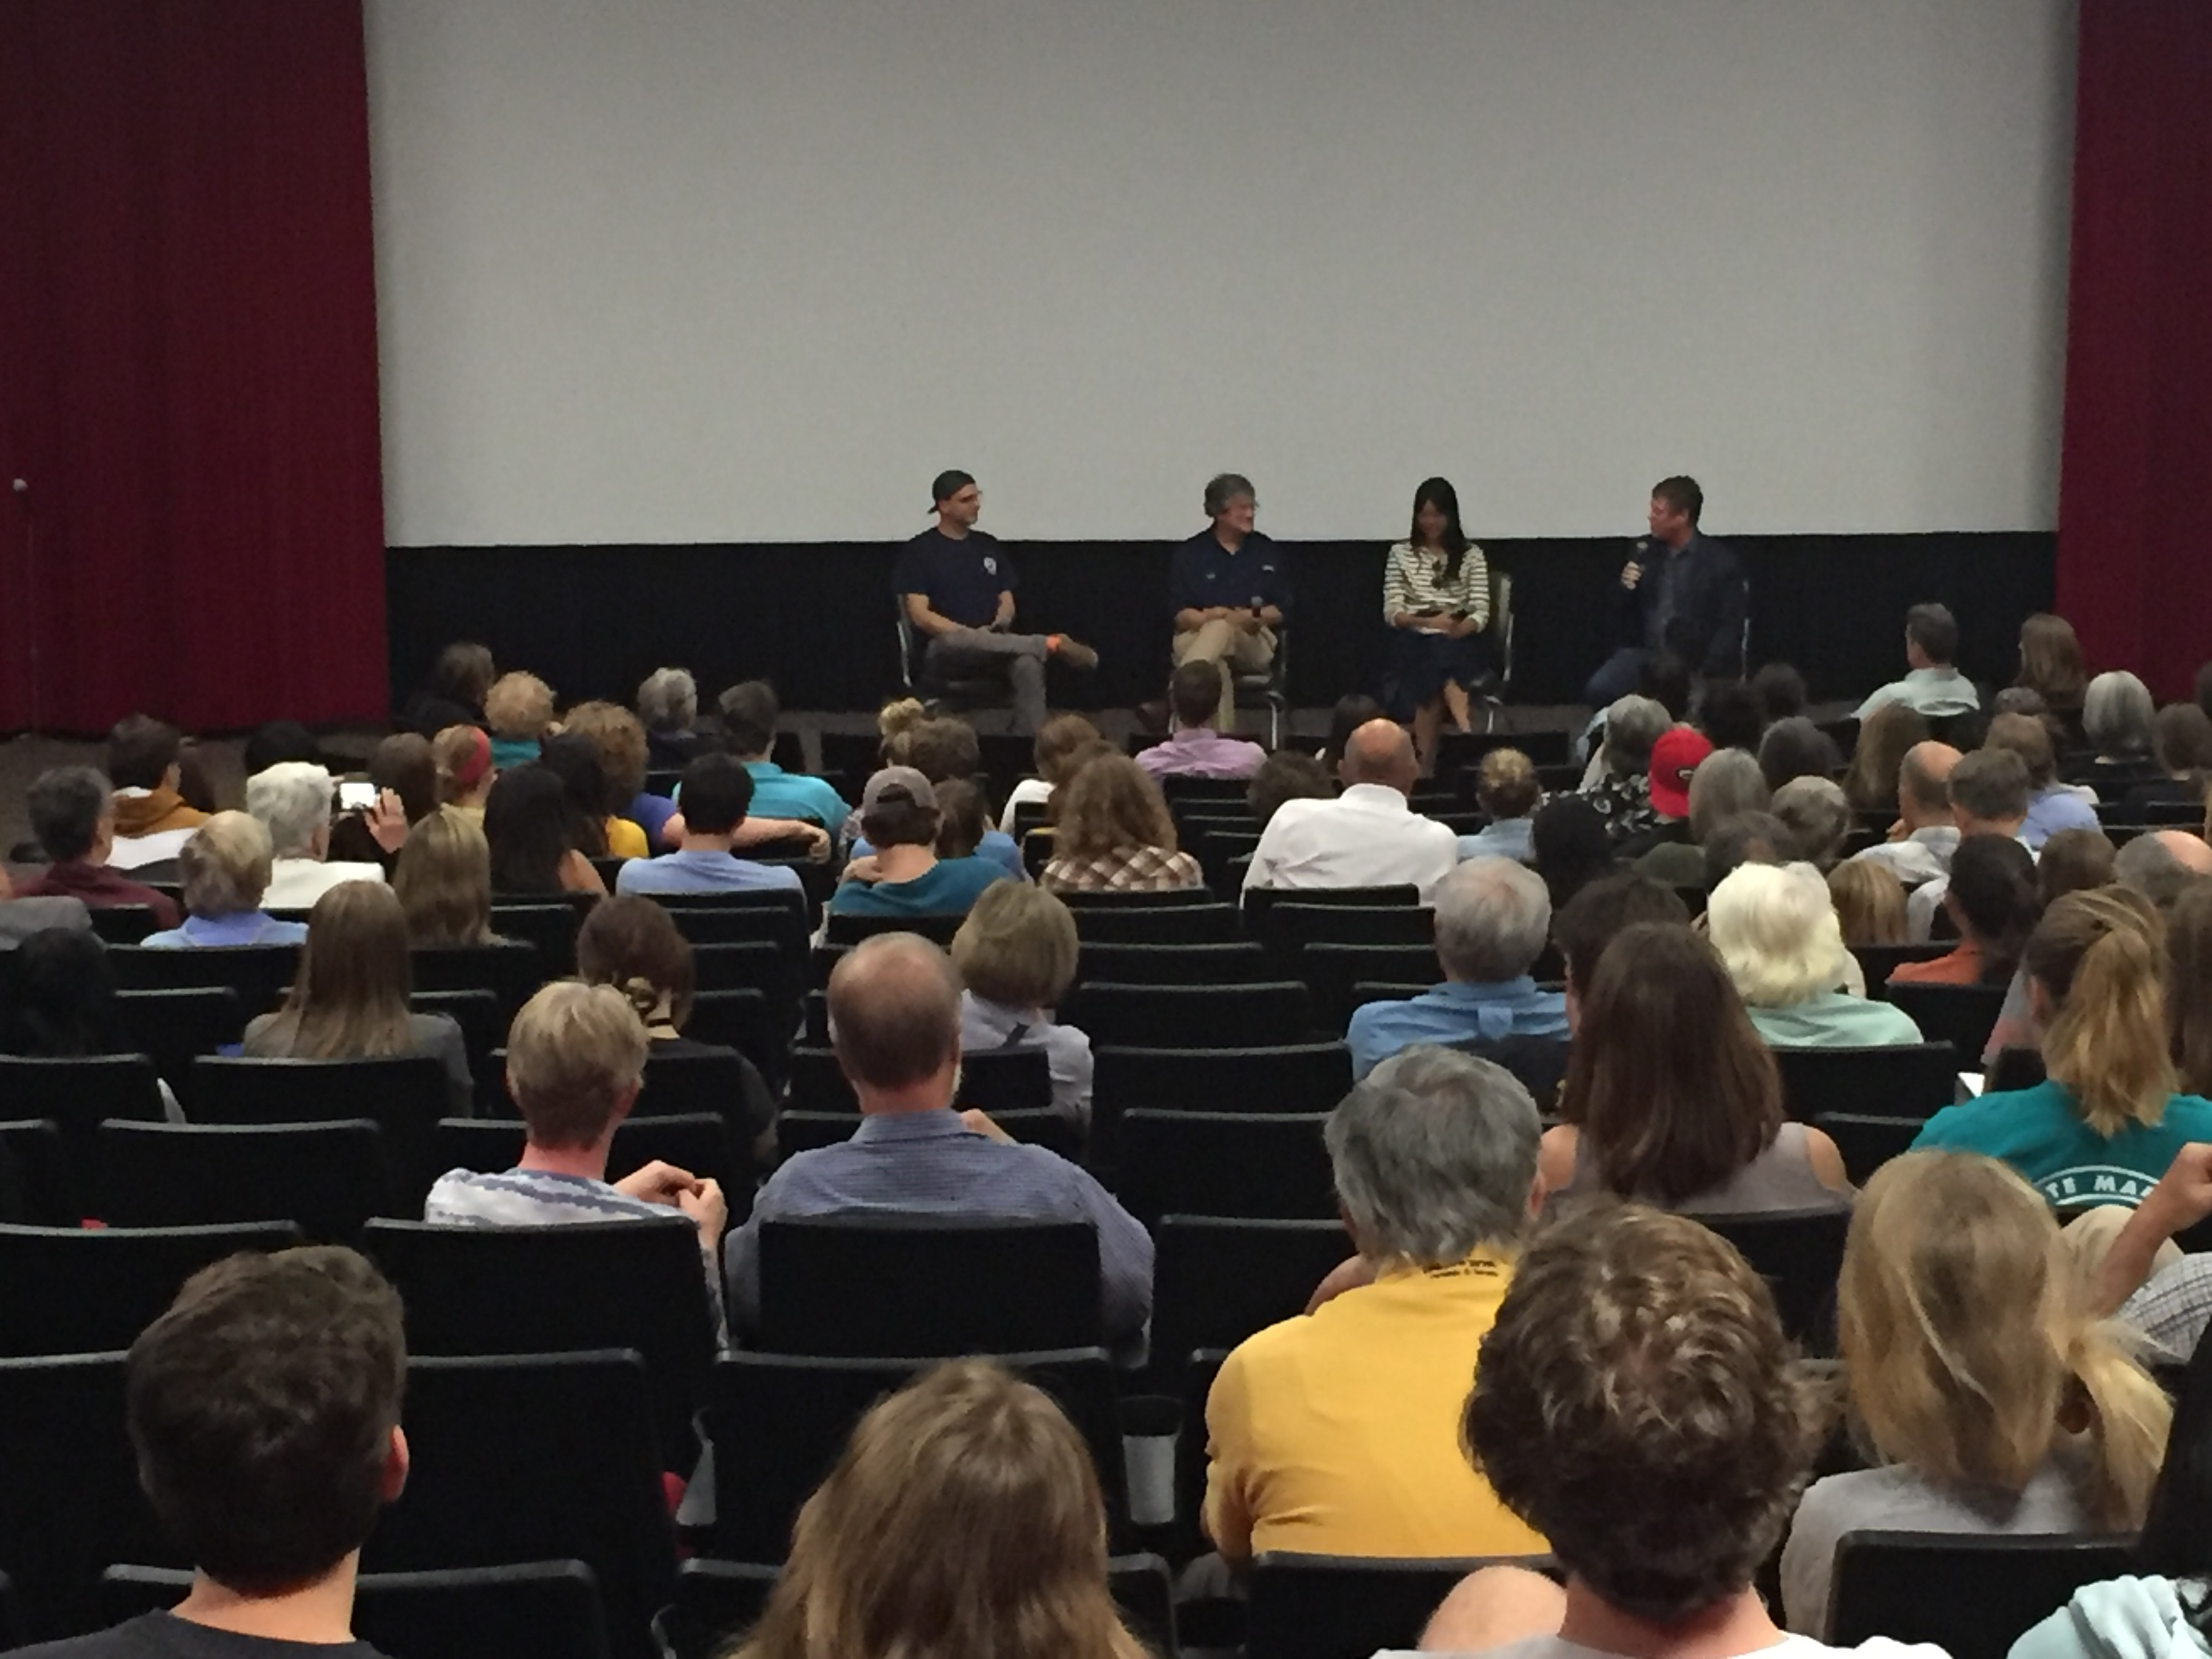 <div style='color:#000000;'><br /><br /><h2>2017 Chasing Coral screening. ECOGIG hosted 3 screenings of the movie Chasing Coral at the University of Georgia in October, 2017. After each screening, a Q&A session was held involving key members of the movie. </h2>(c) ECOGIG</div>